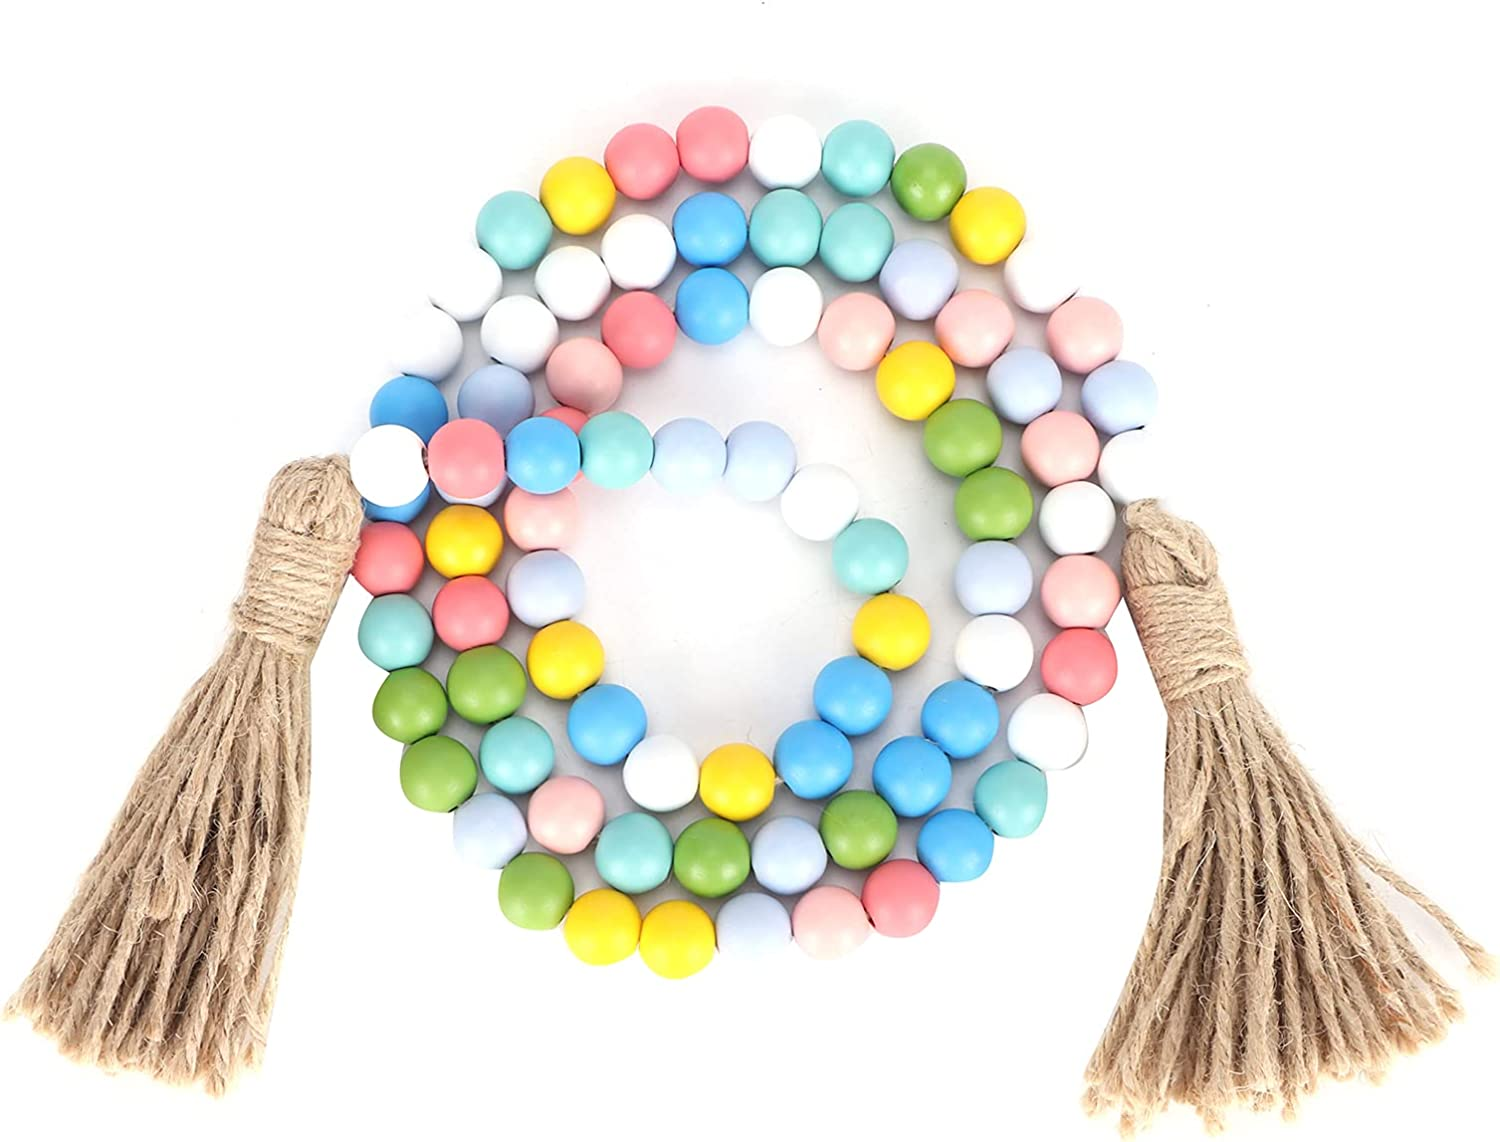 Bead Garland Farmhouse Easter Wood Sale Max 81% OFF Be Rustic Hand‑Made